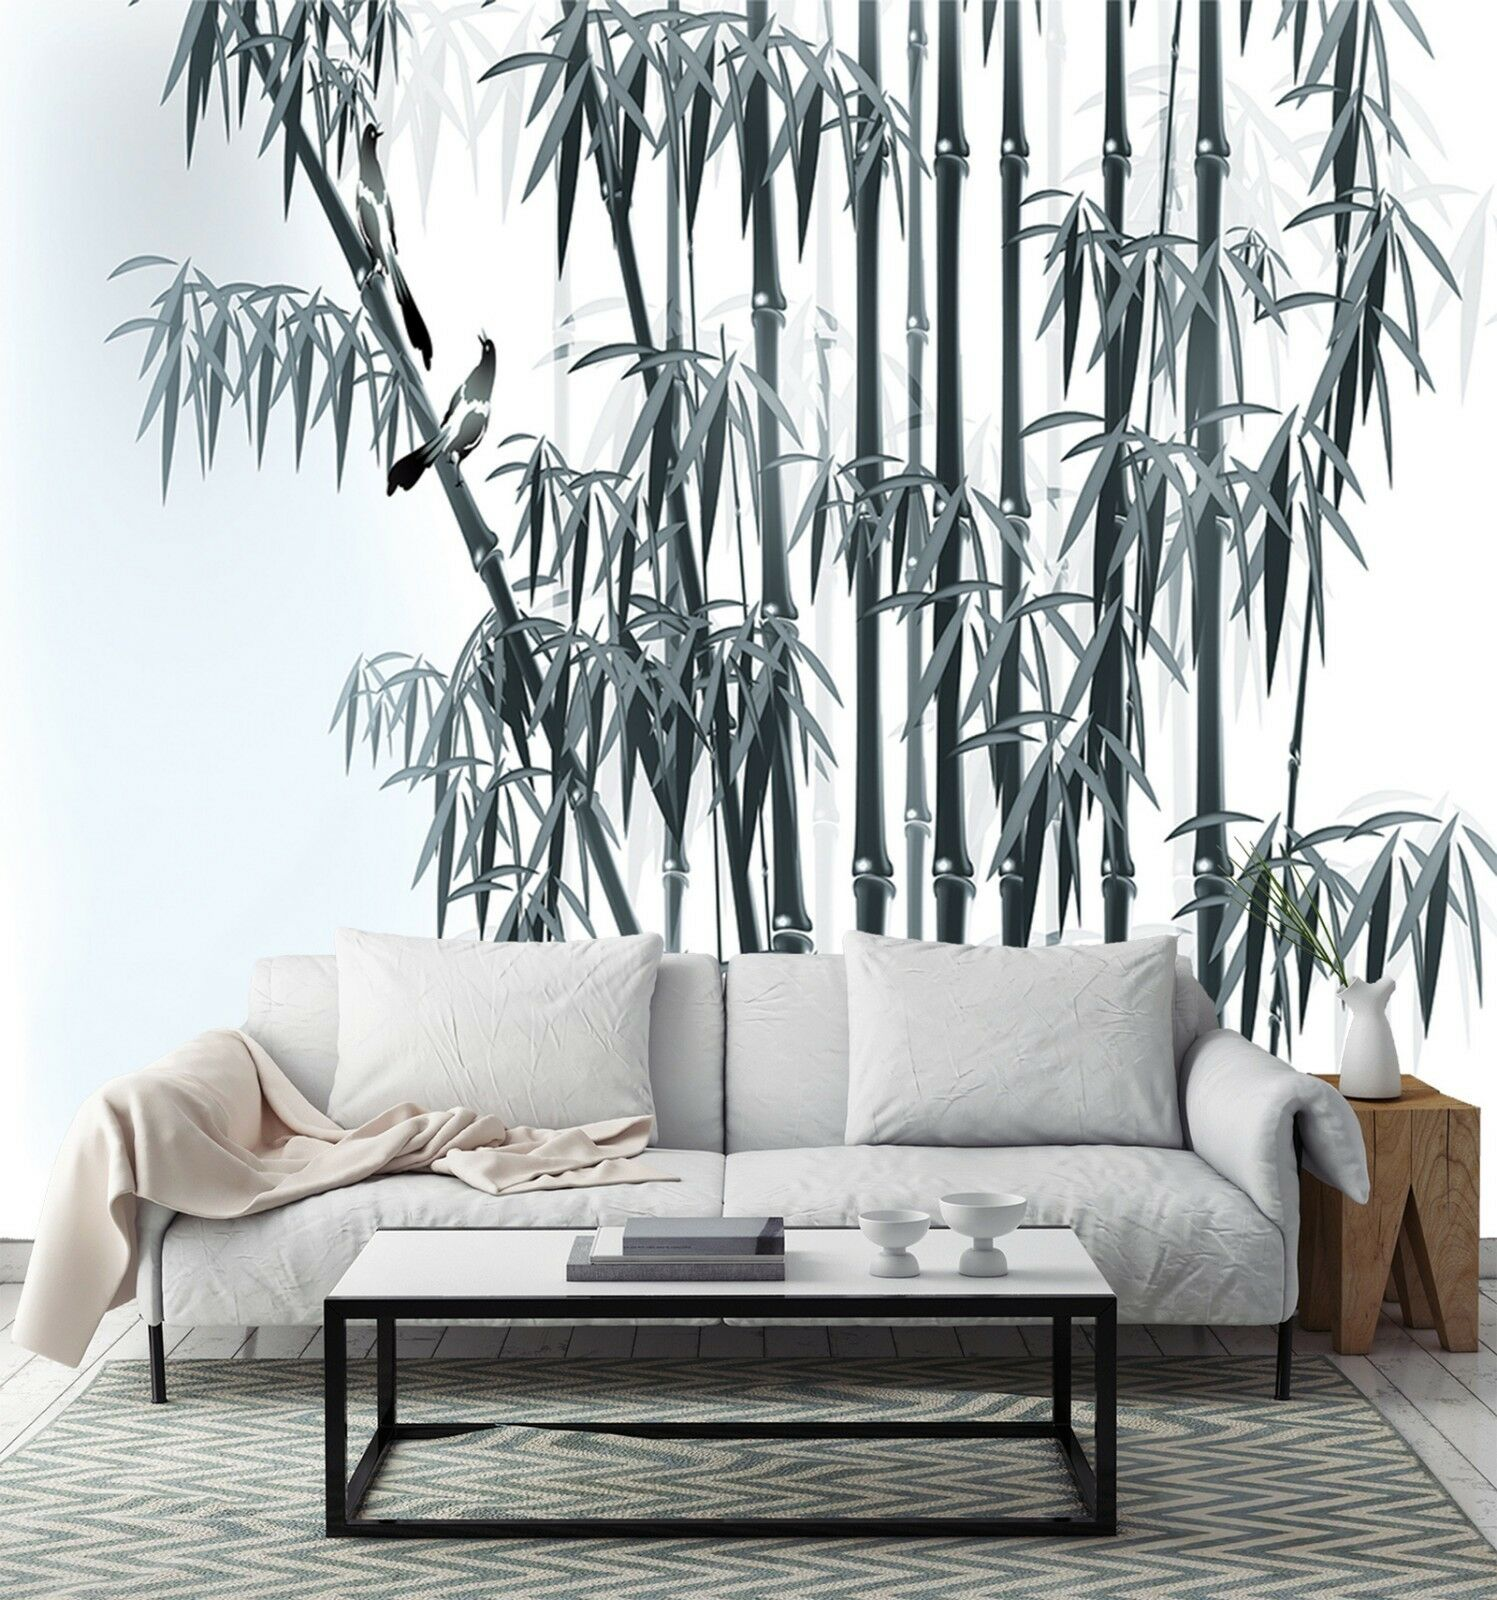 3D Bamboo leaves sketch Wall Paper Print Decal Wall Deco Indoor wall Mural